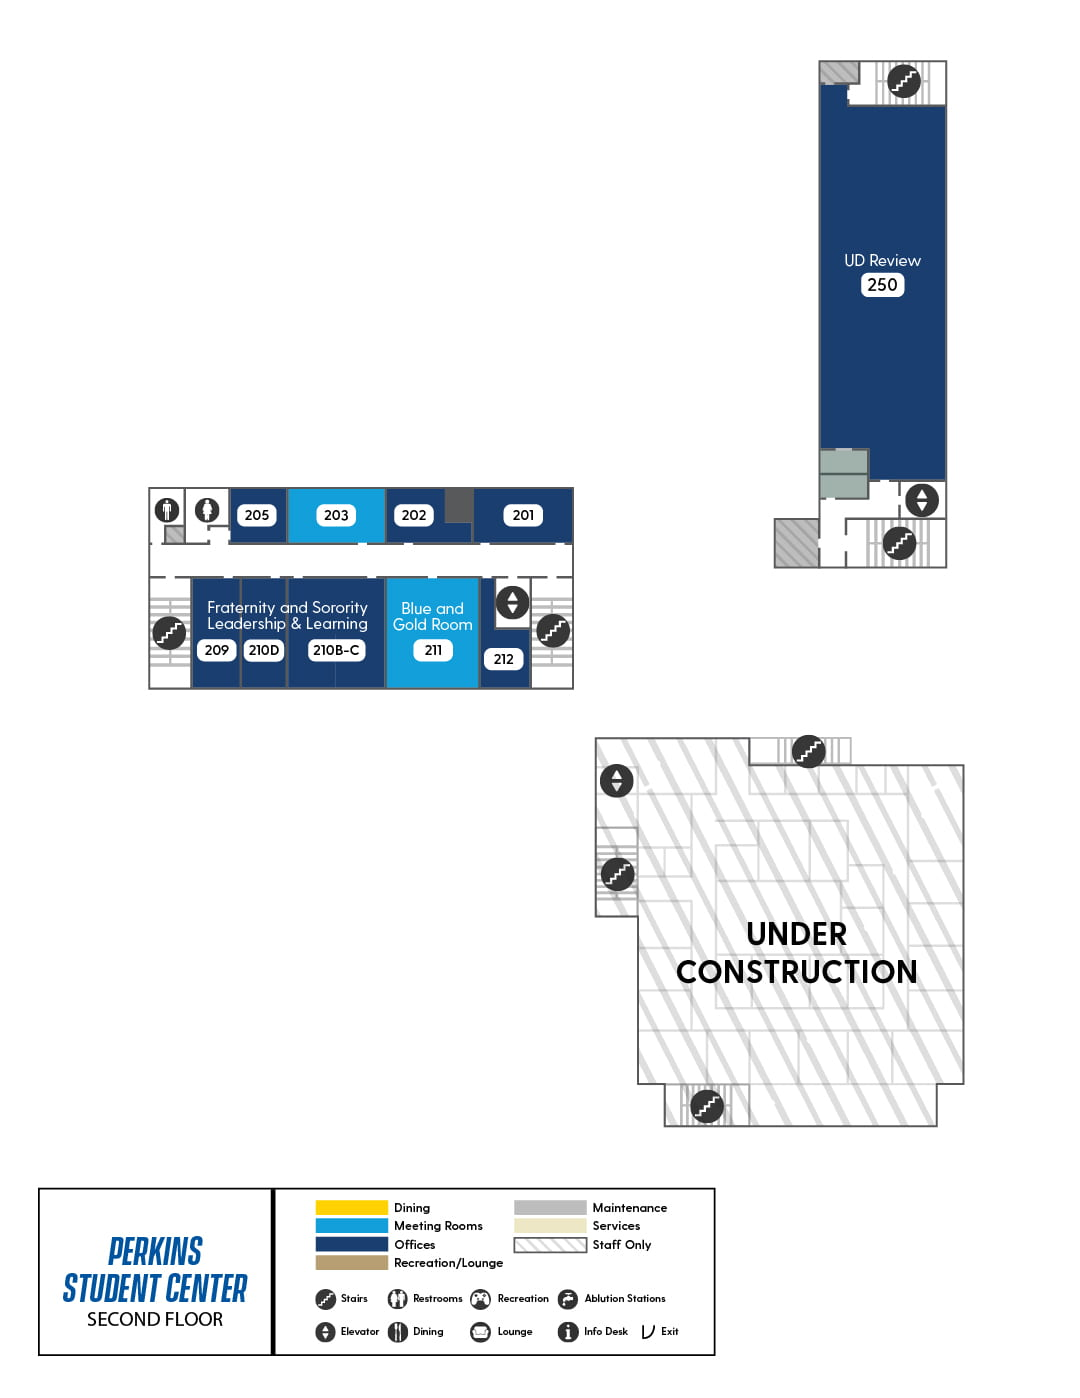 Perkins Second Floor map, showing The Egg, Fraternity and Sorority Leadership & Learning, and the UD Review offices